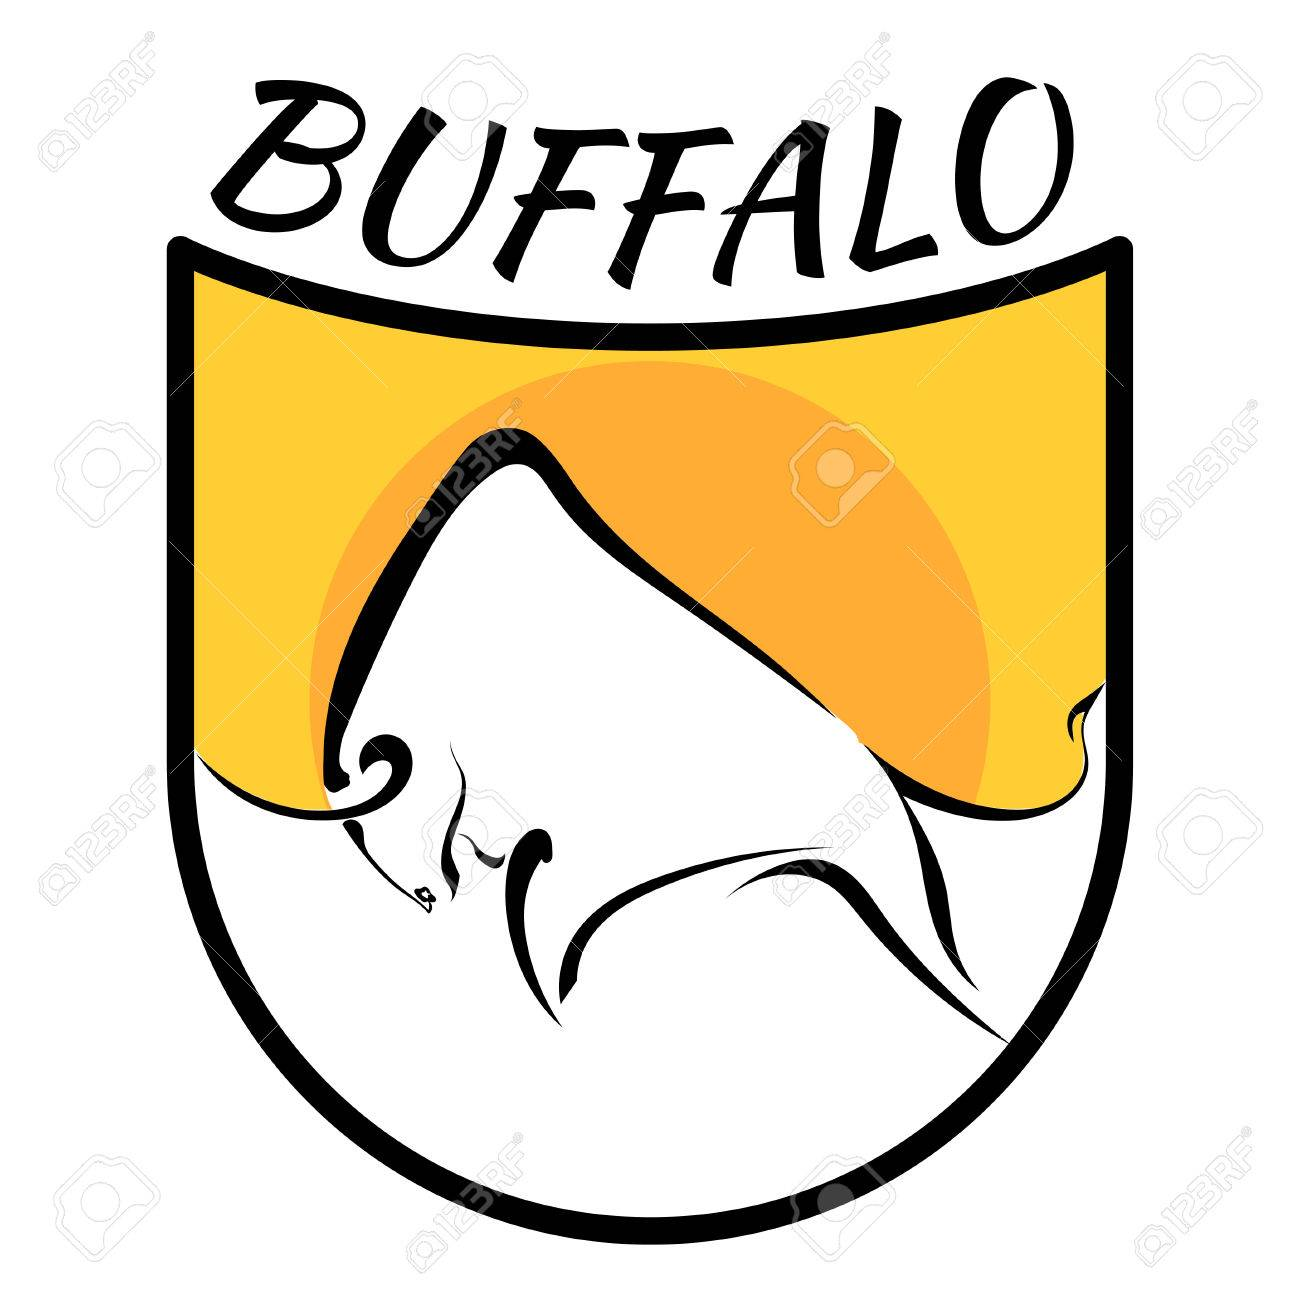 Buffalo Logo  Color Vector Image Of A Buffalo On A Yellow